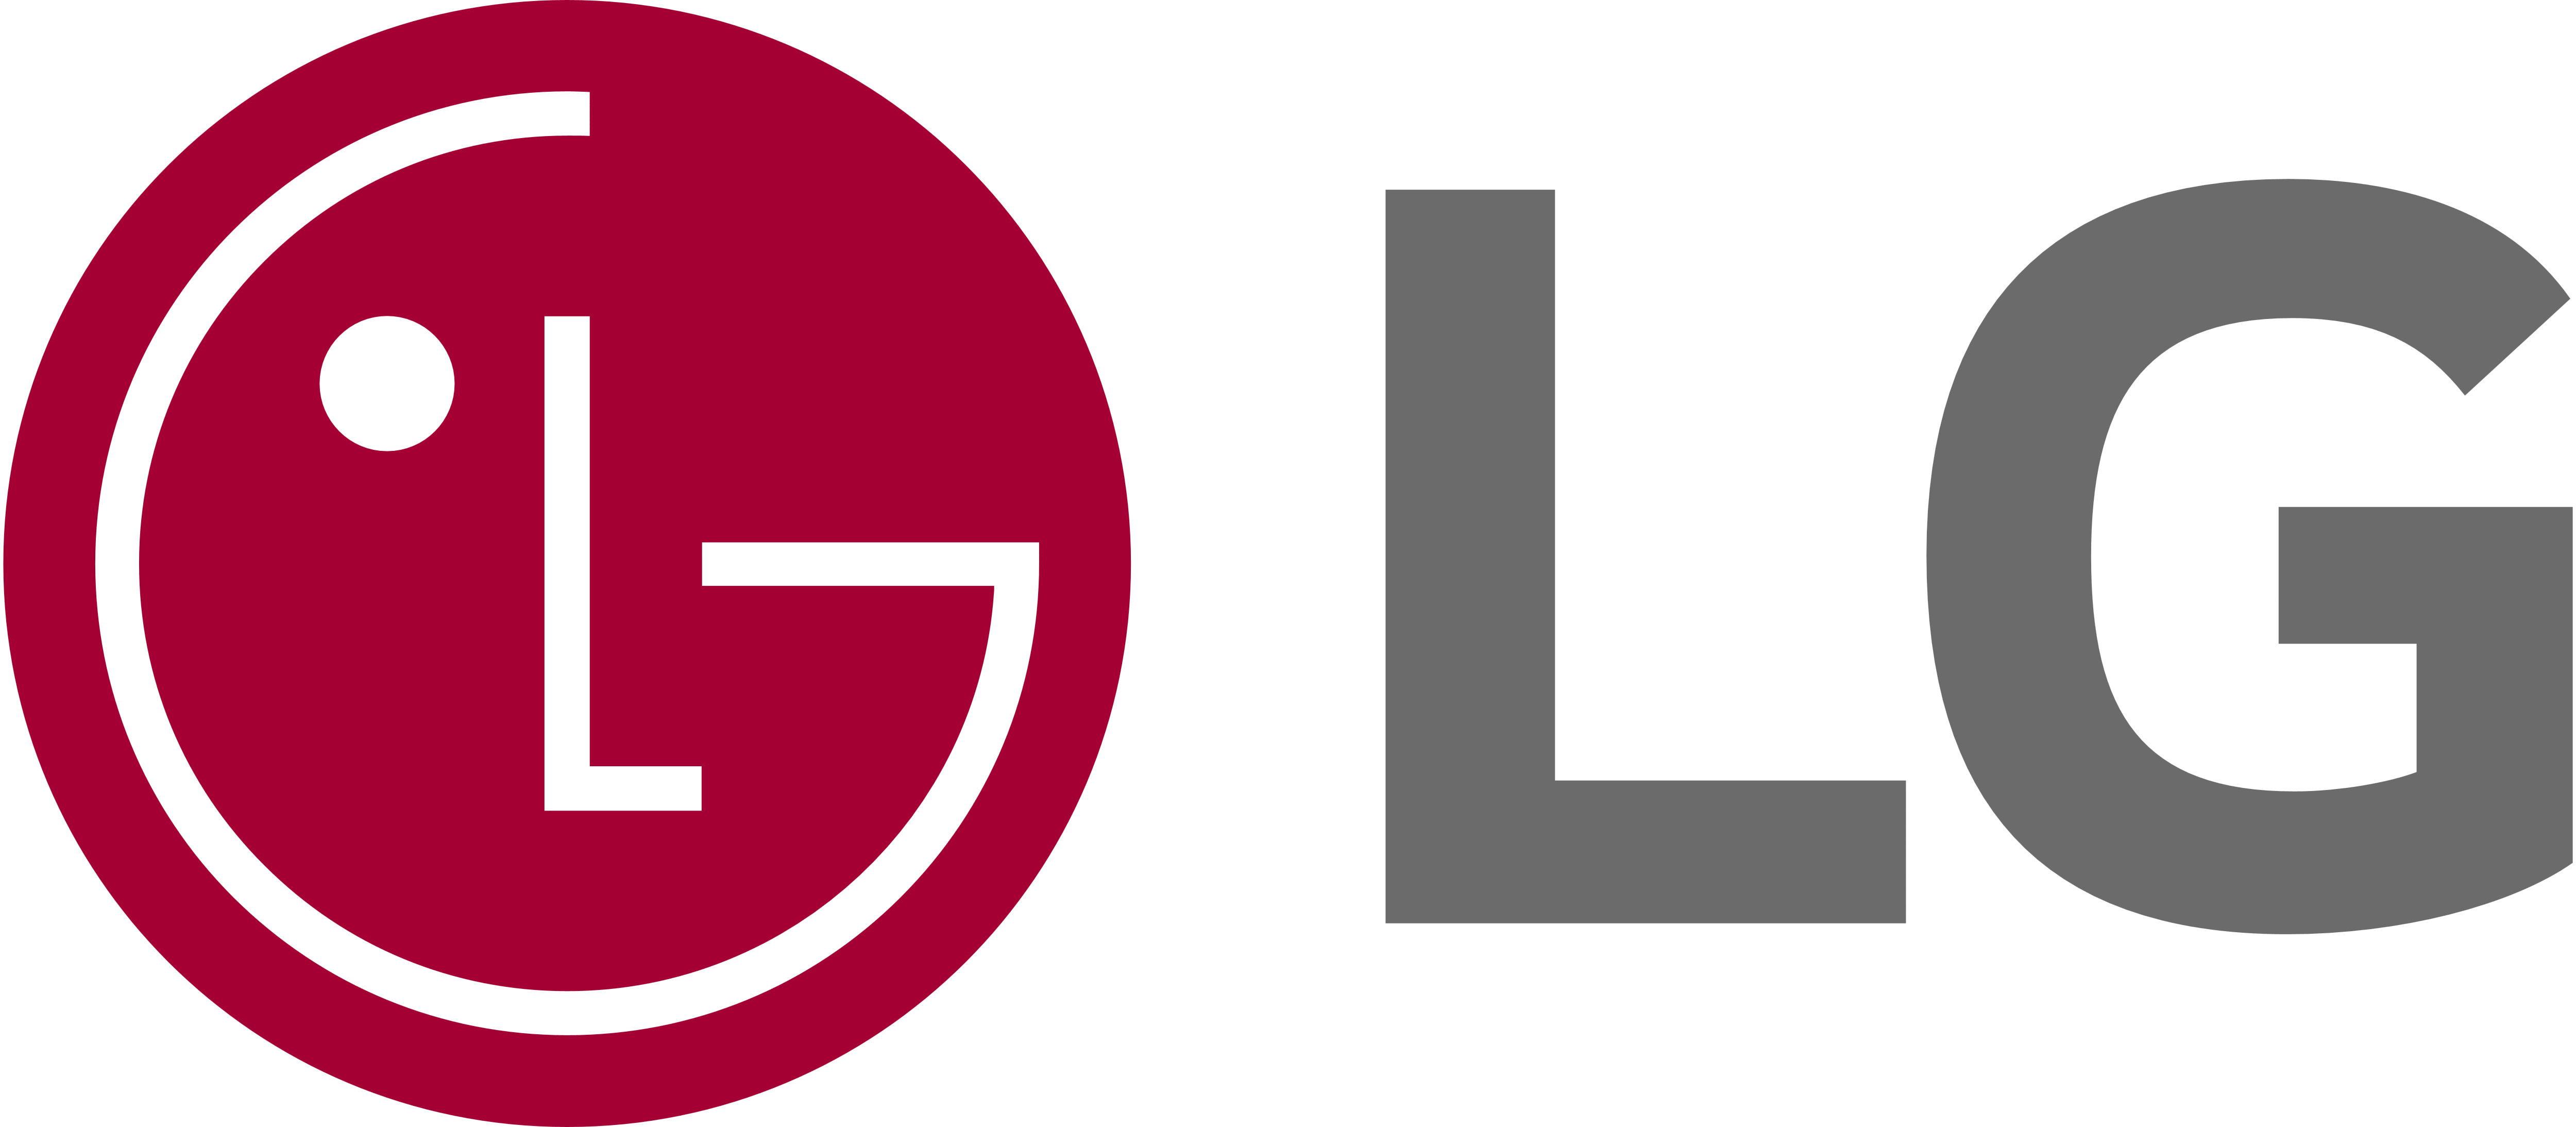 LG Appliance Repair, GE Appliance Repair